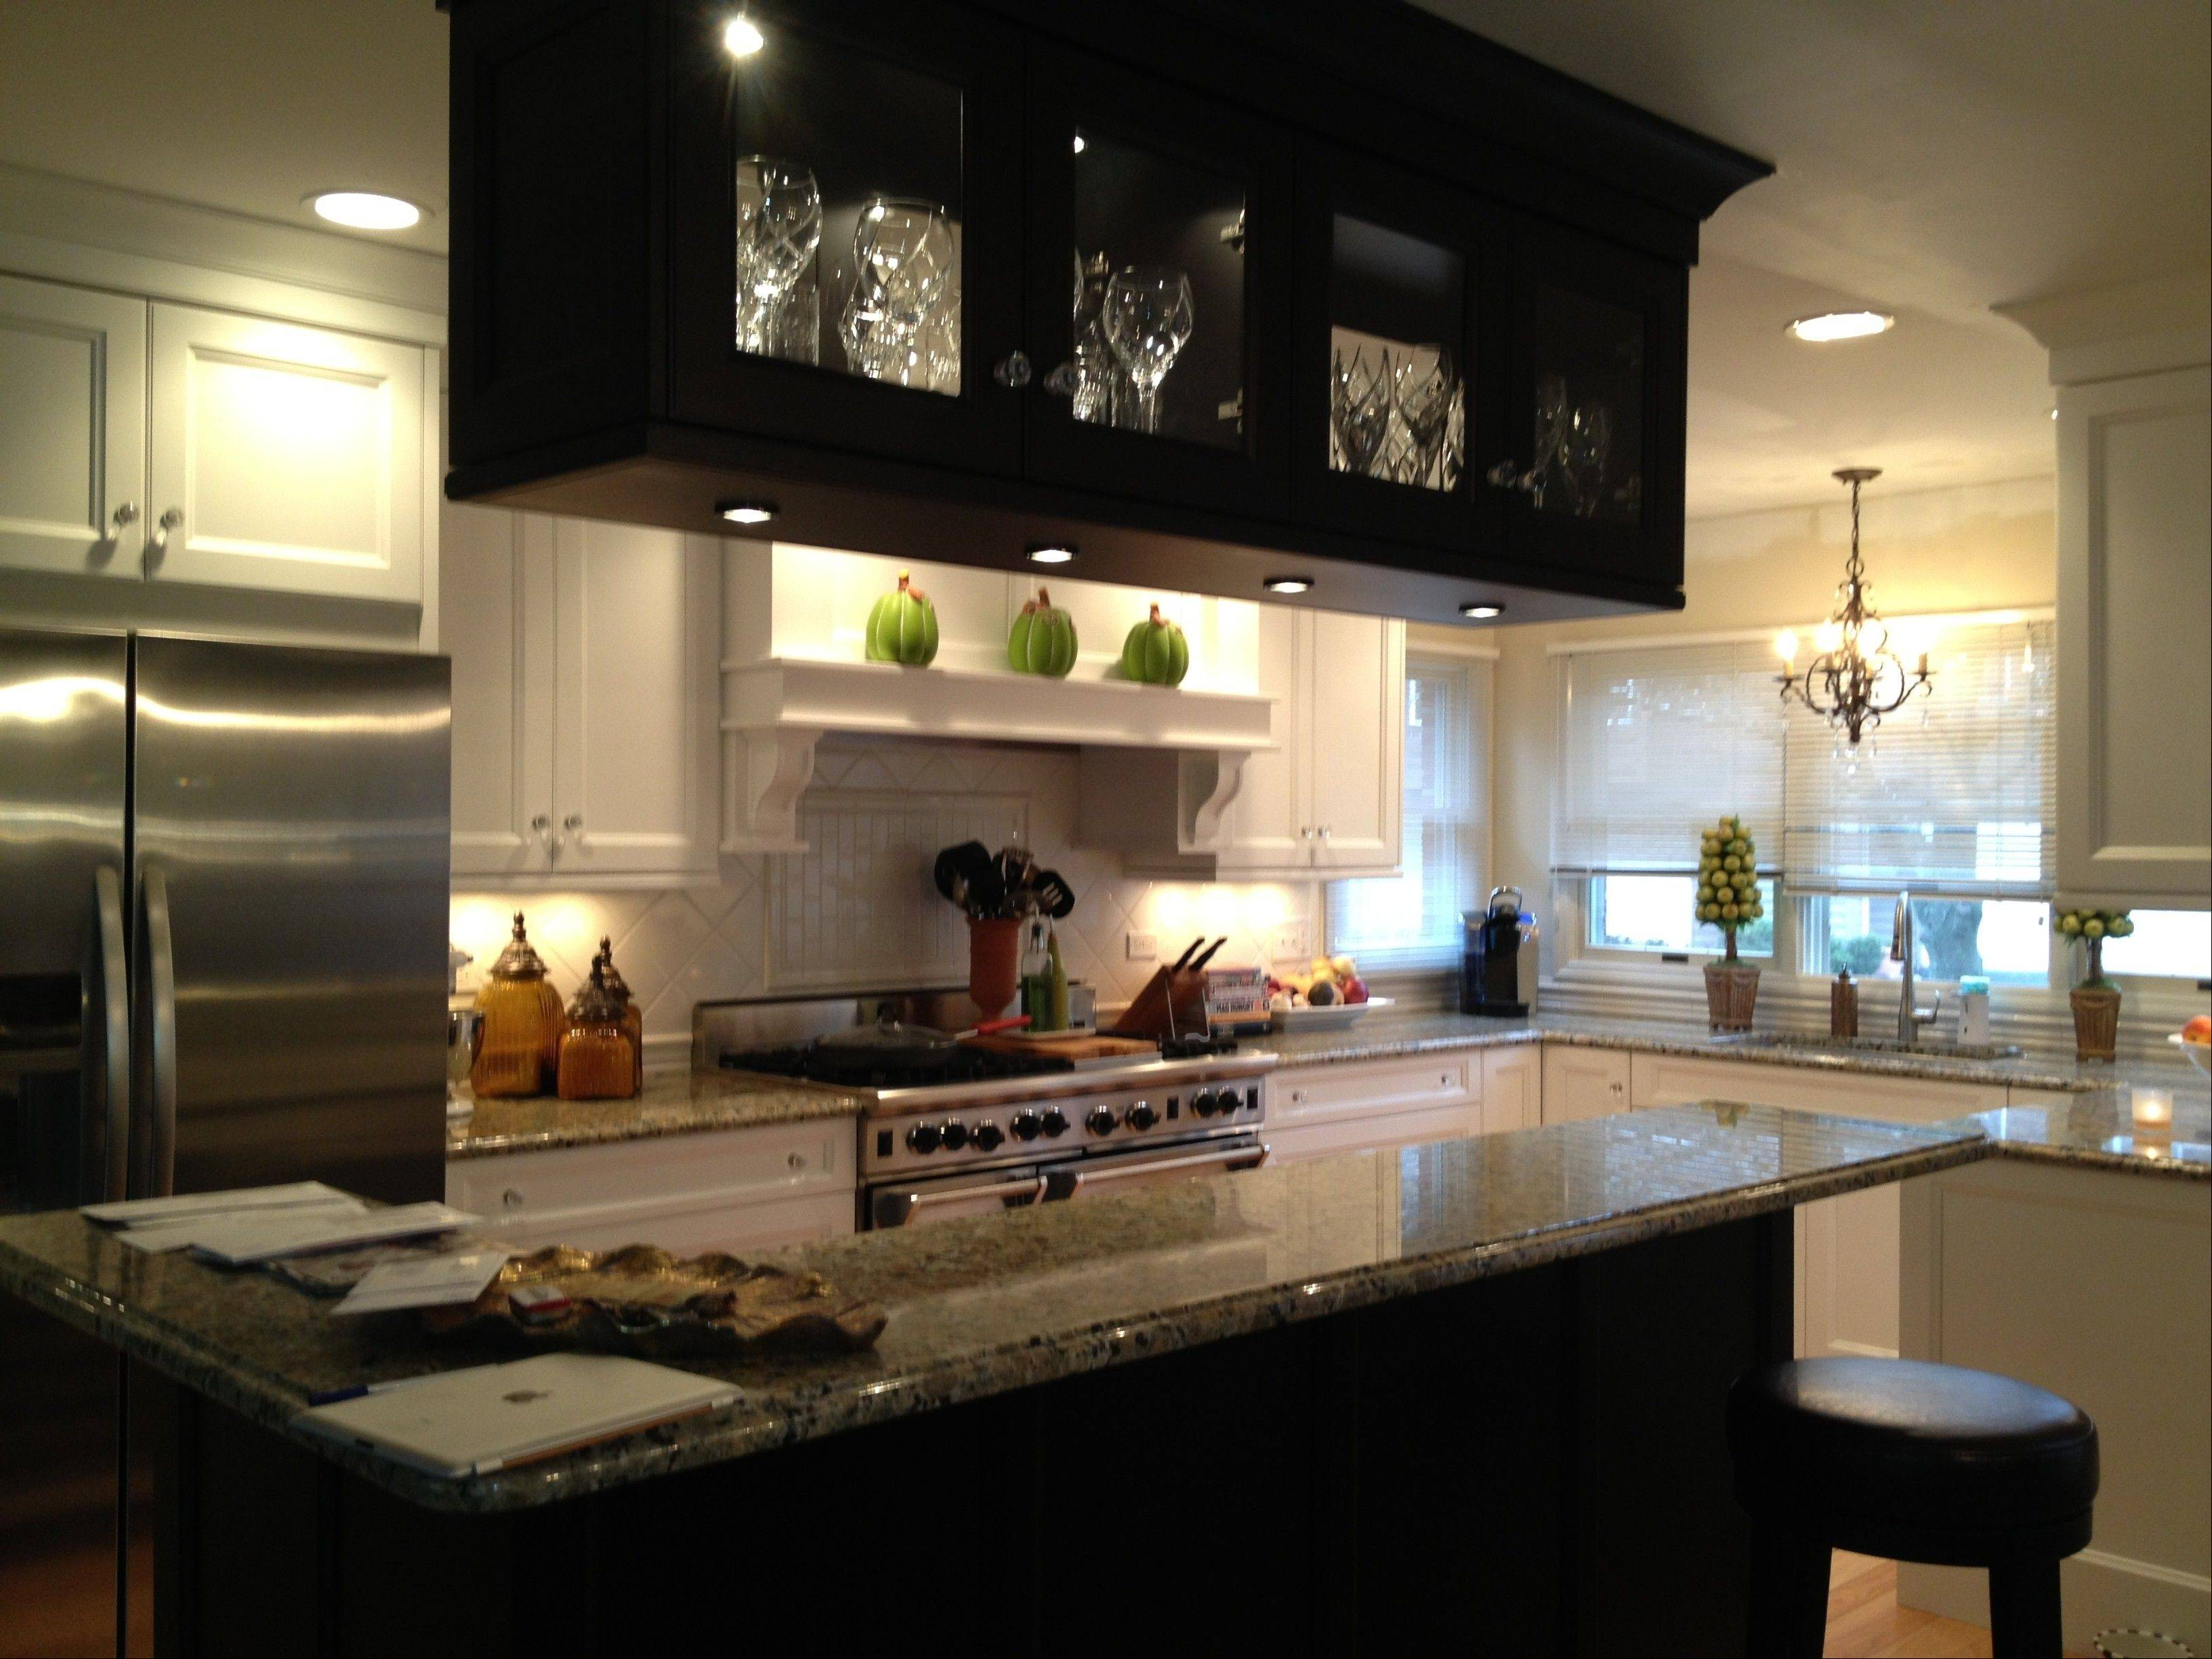 Contrasting light and dark cabinets and glass-fronted doors with cabinet lighting are popular today.